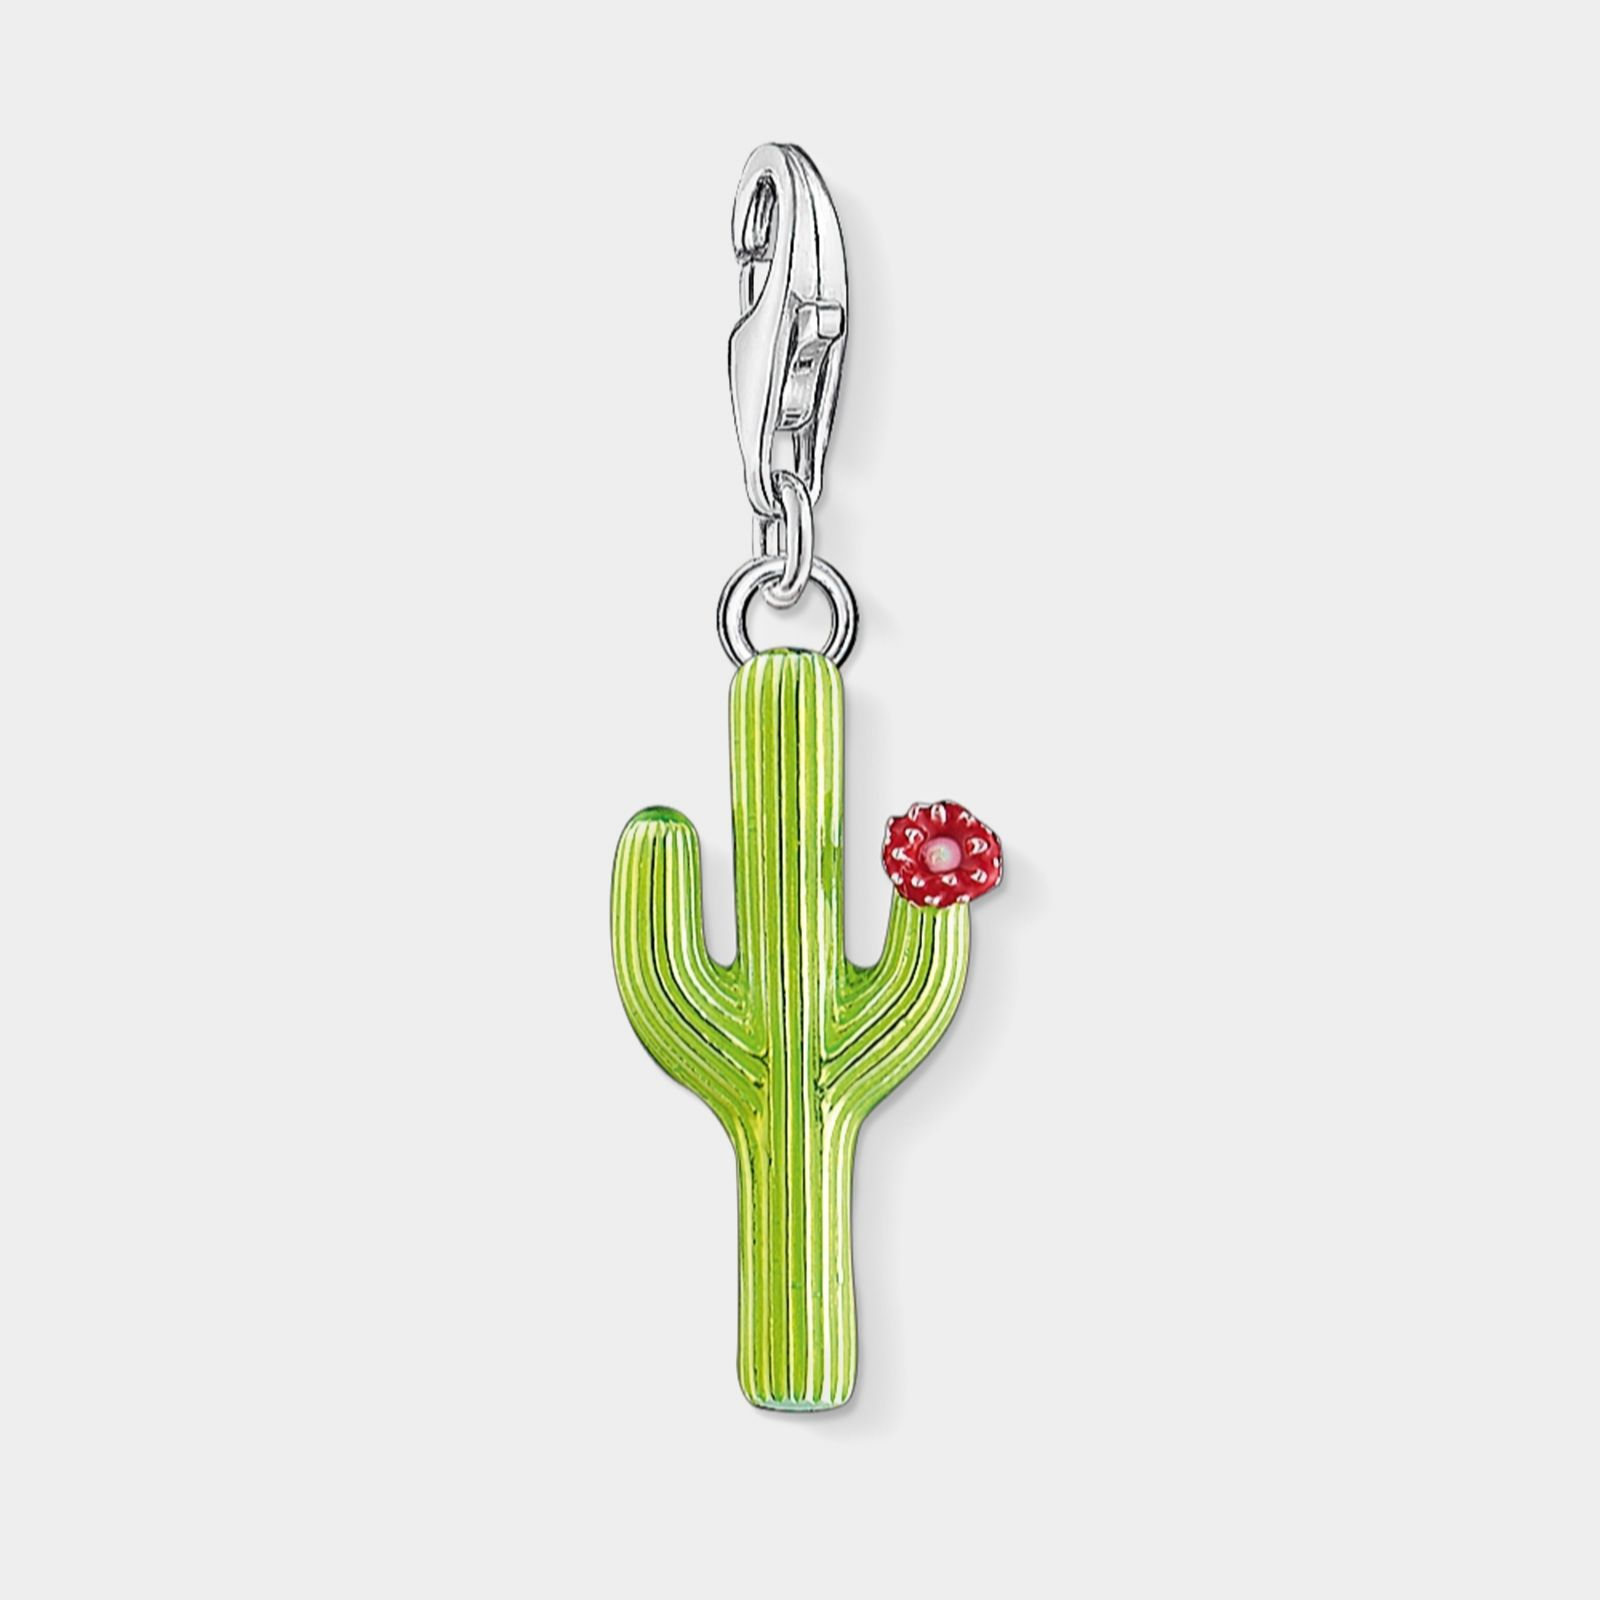 Thomas sabo charms jewellery qvc uk thomas sabo charm club green cactus flower charm sterling silver 312292 mozeypictures Choice Image